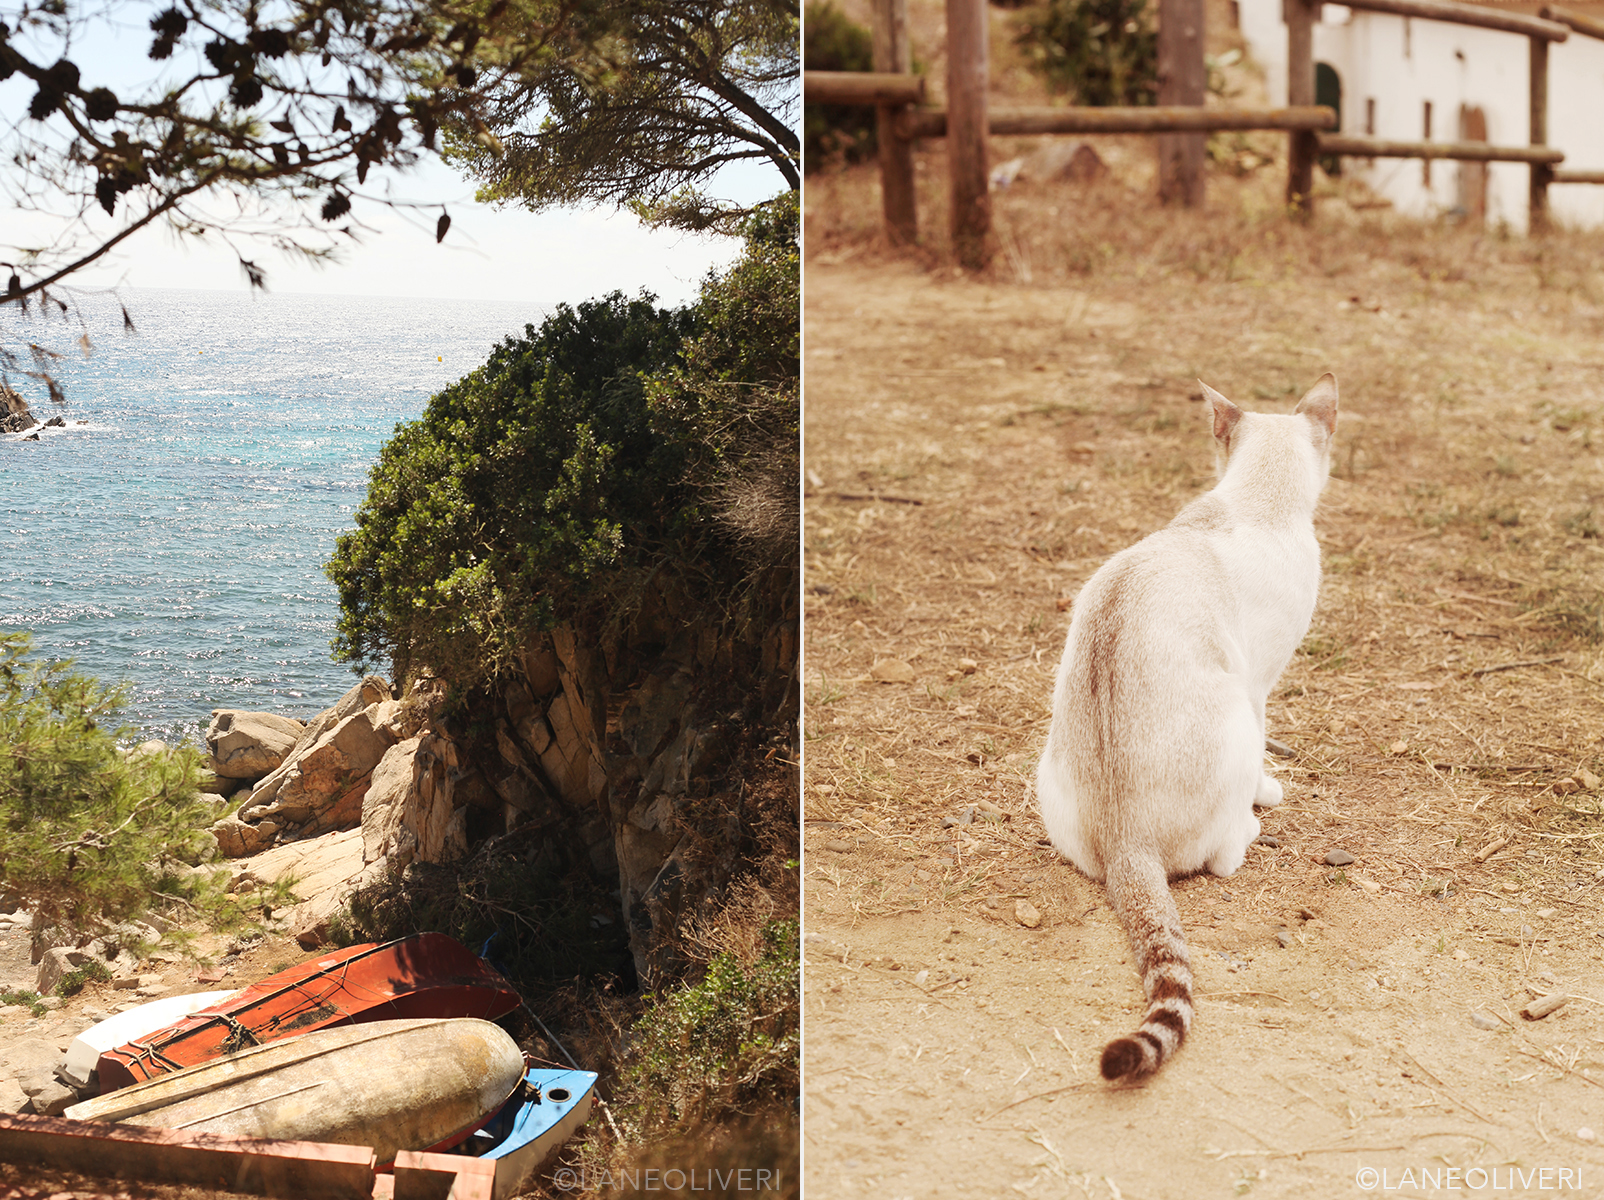 El Gato solo, tail twitching just below the ruins and above the beach. Lane Oliveri 2017